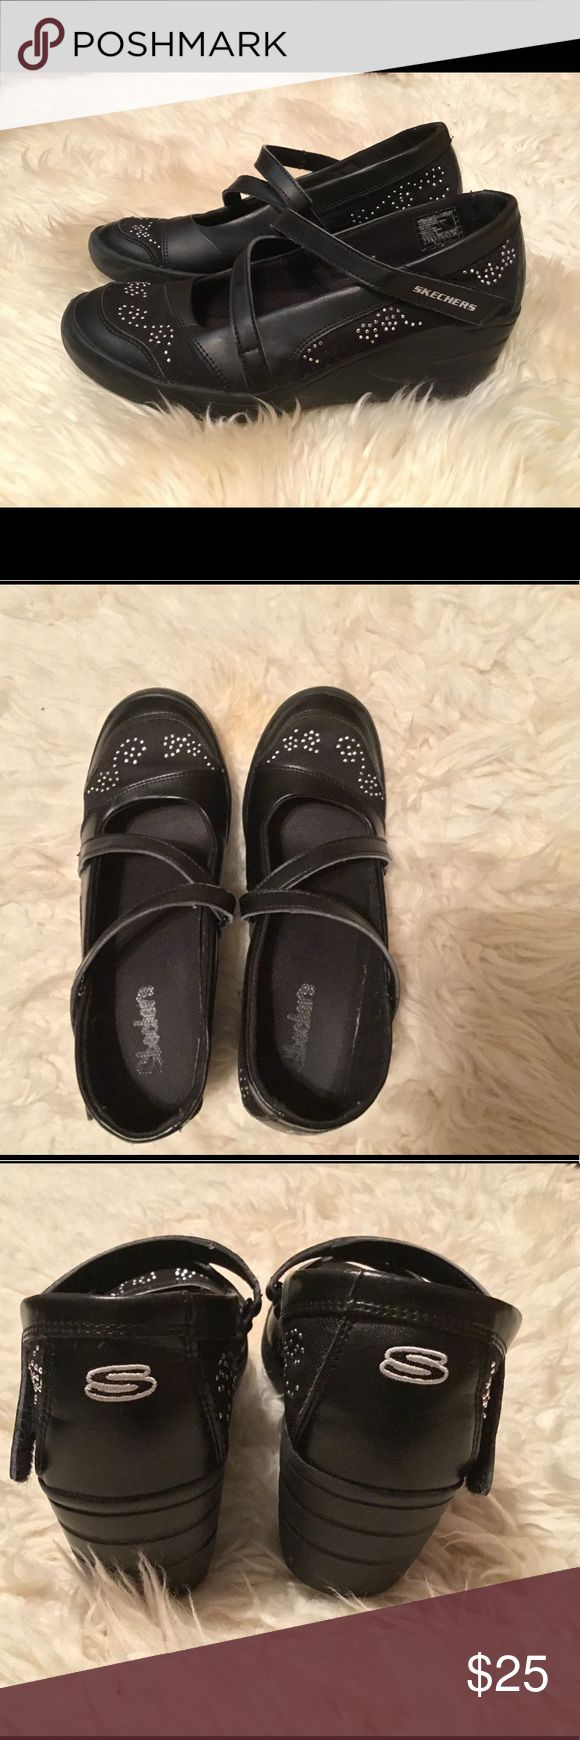 Black Skechers Women's Shoes Size 7.5 Has about a 2-in. wedge heel.  In very good condition. Skechers Shoes